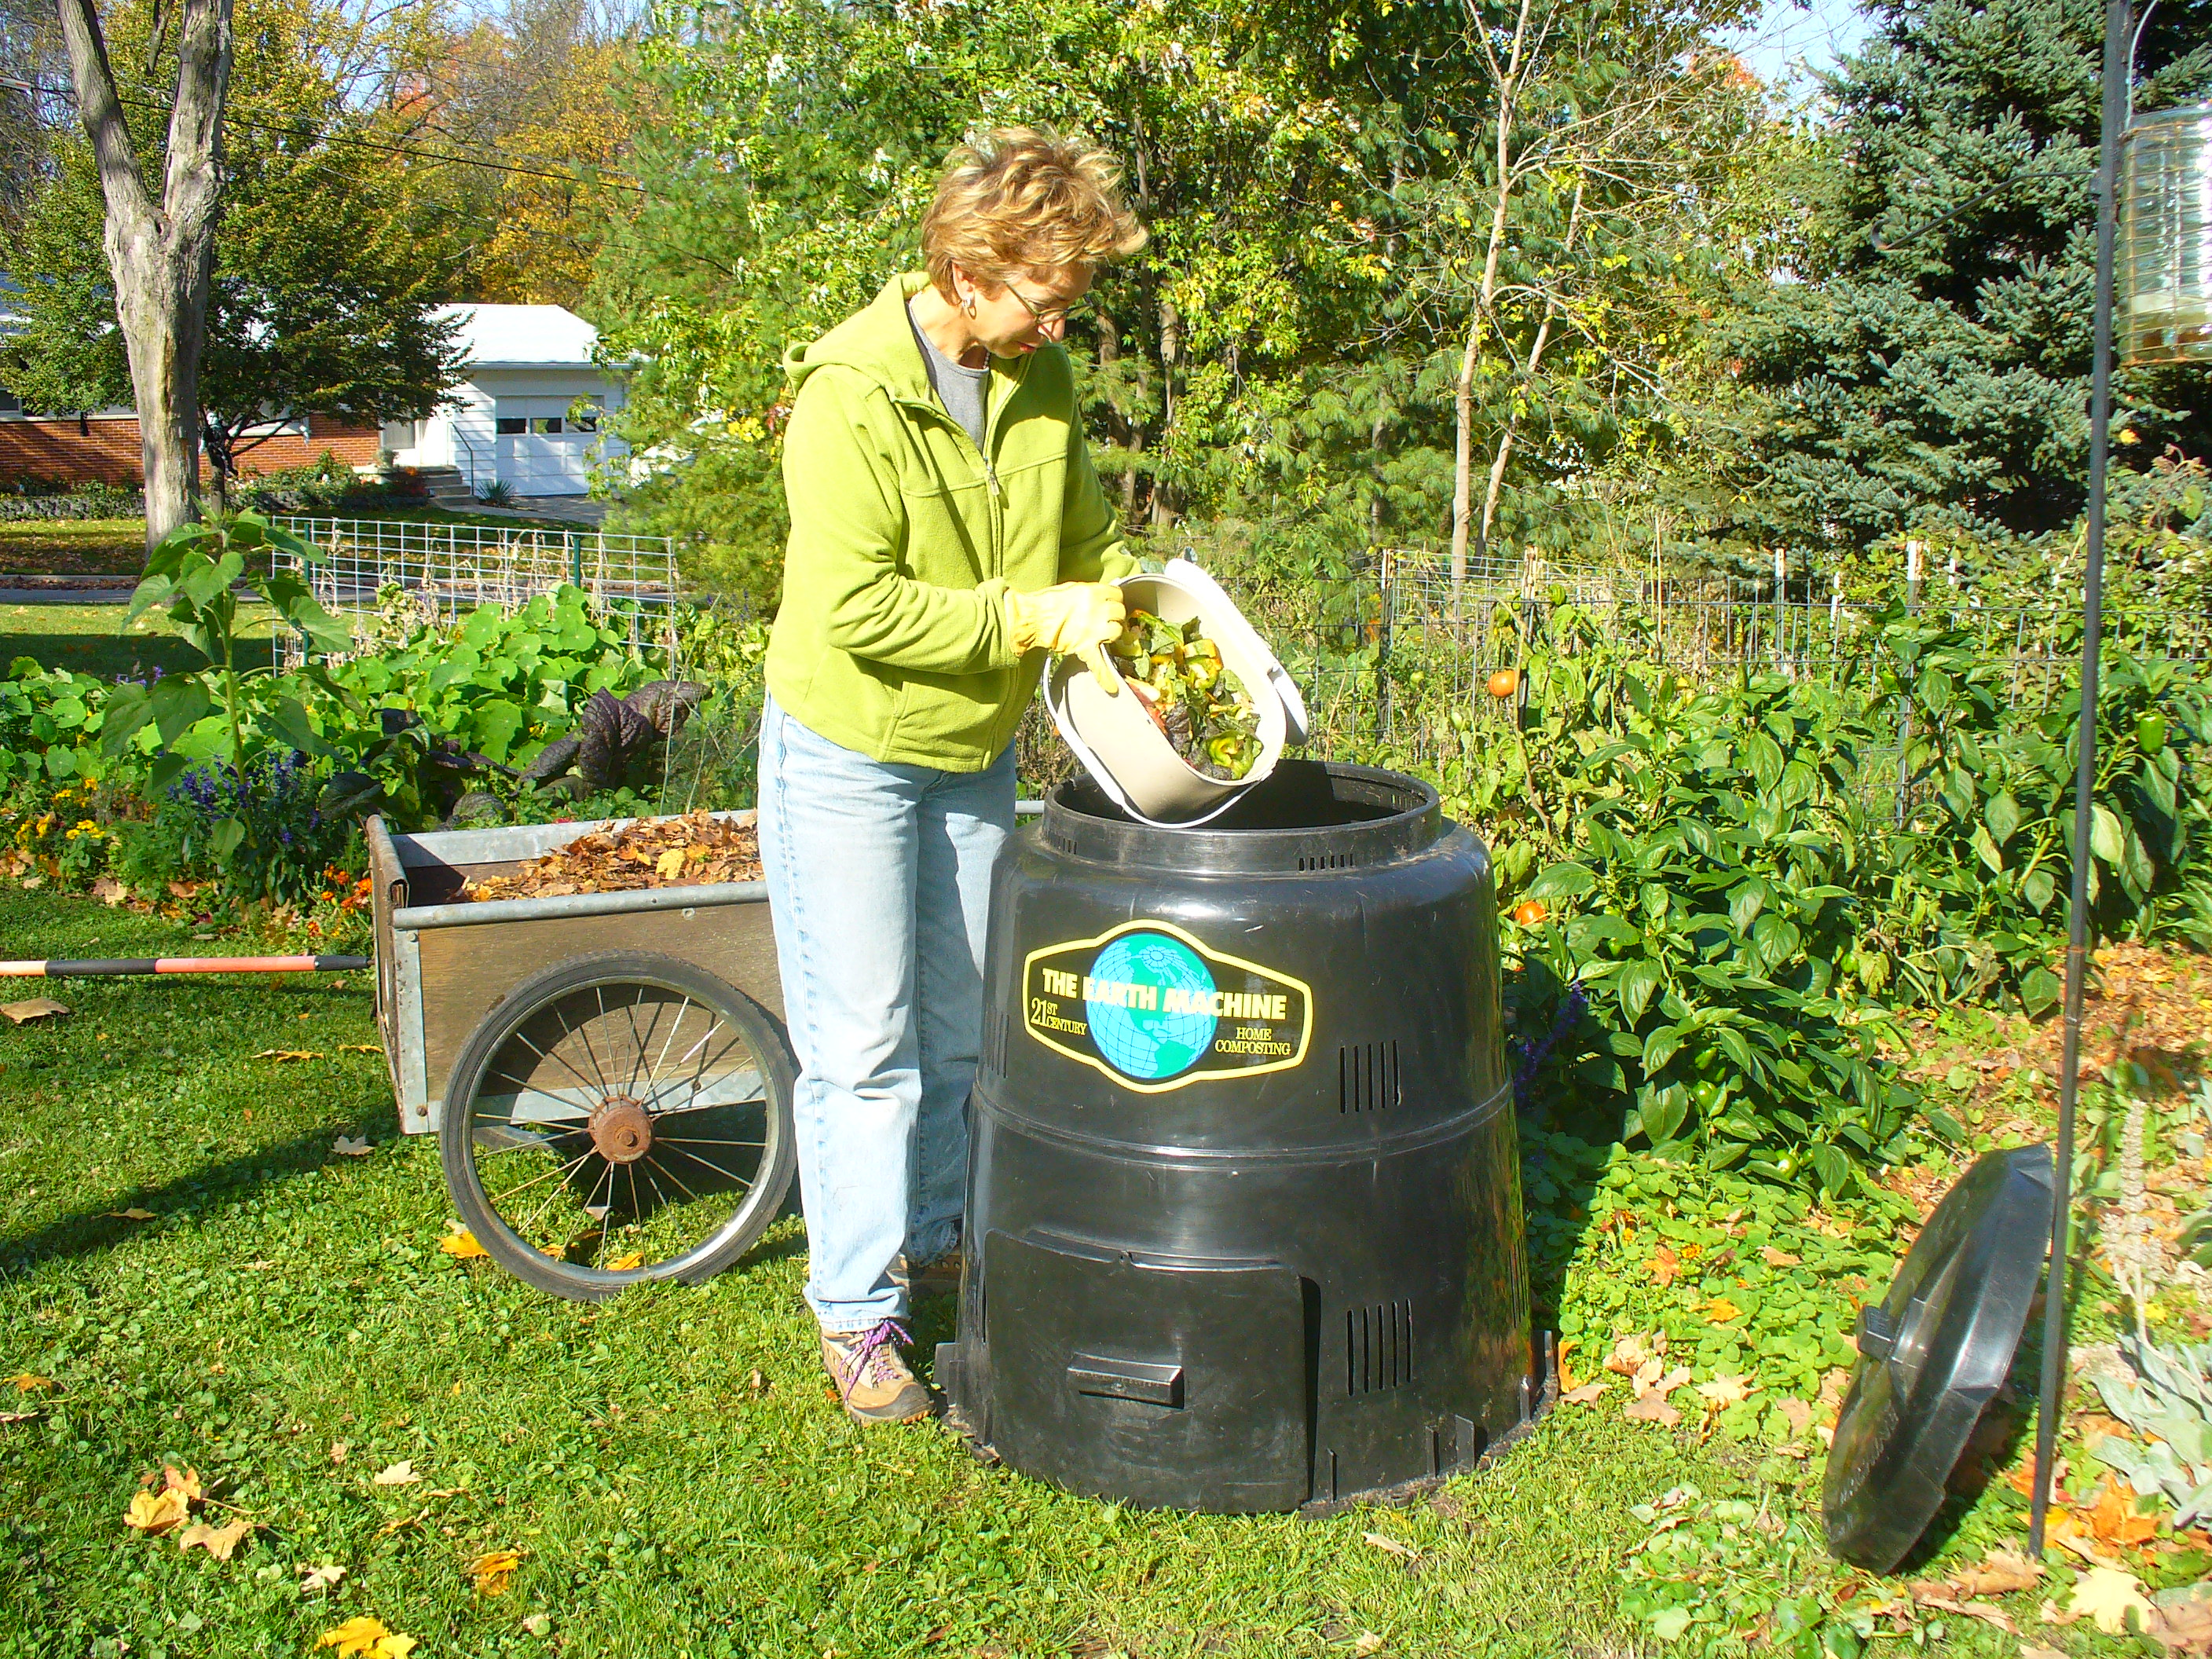 resident disposing organic waste in Earth Machine composter